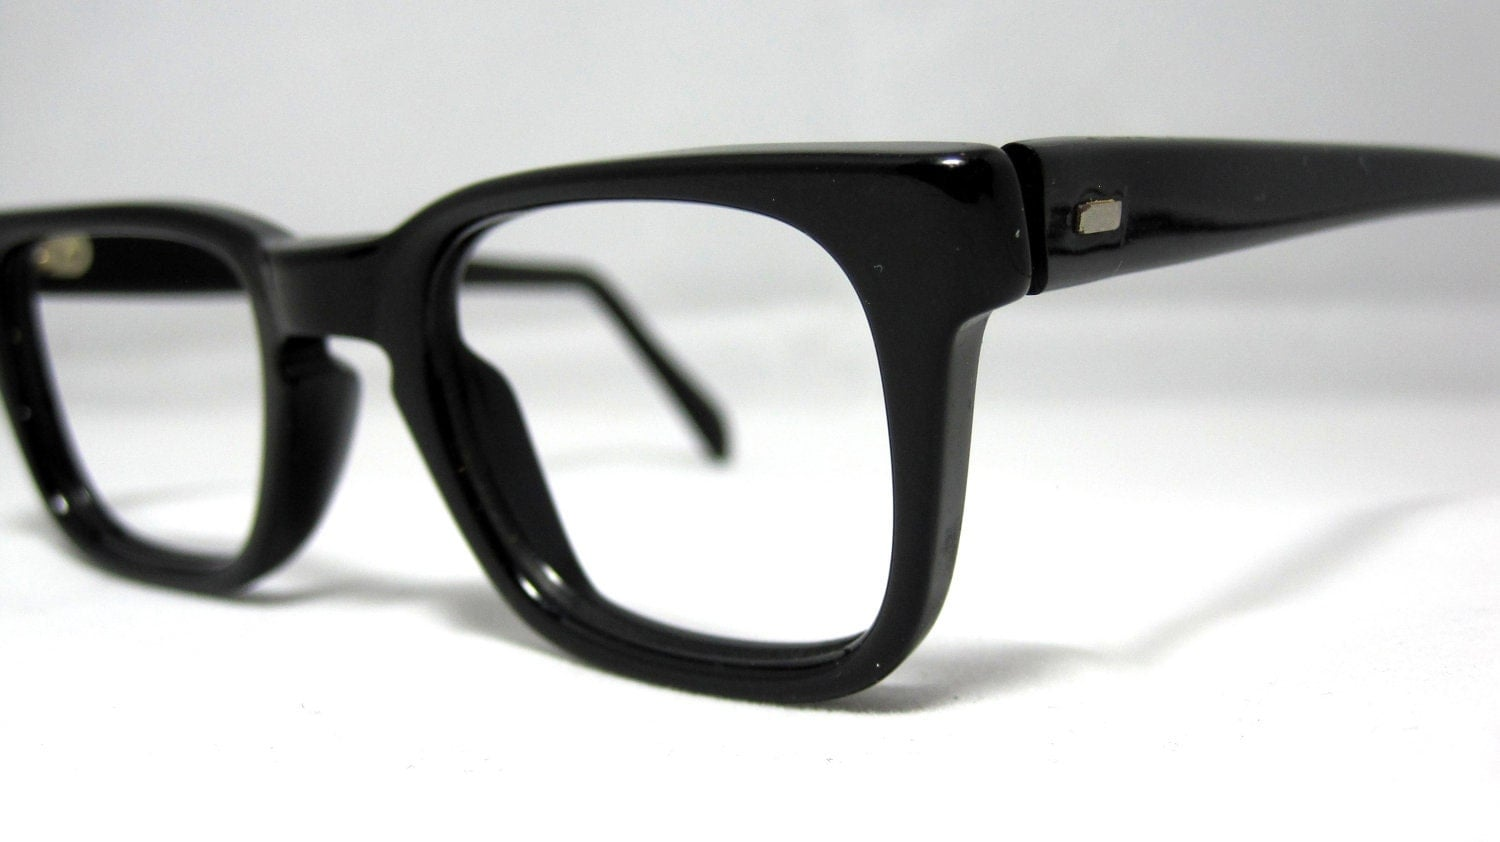 Glasses Frame Discoloration : Vintage 50s Mens EyeGlasses. Black Horn Rim Mad Men Frames